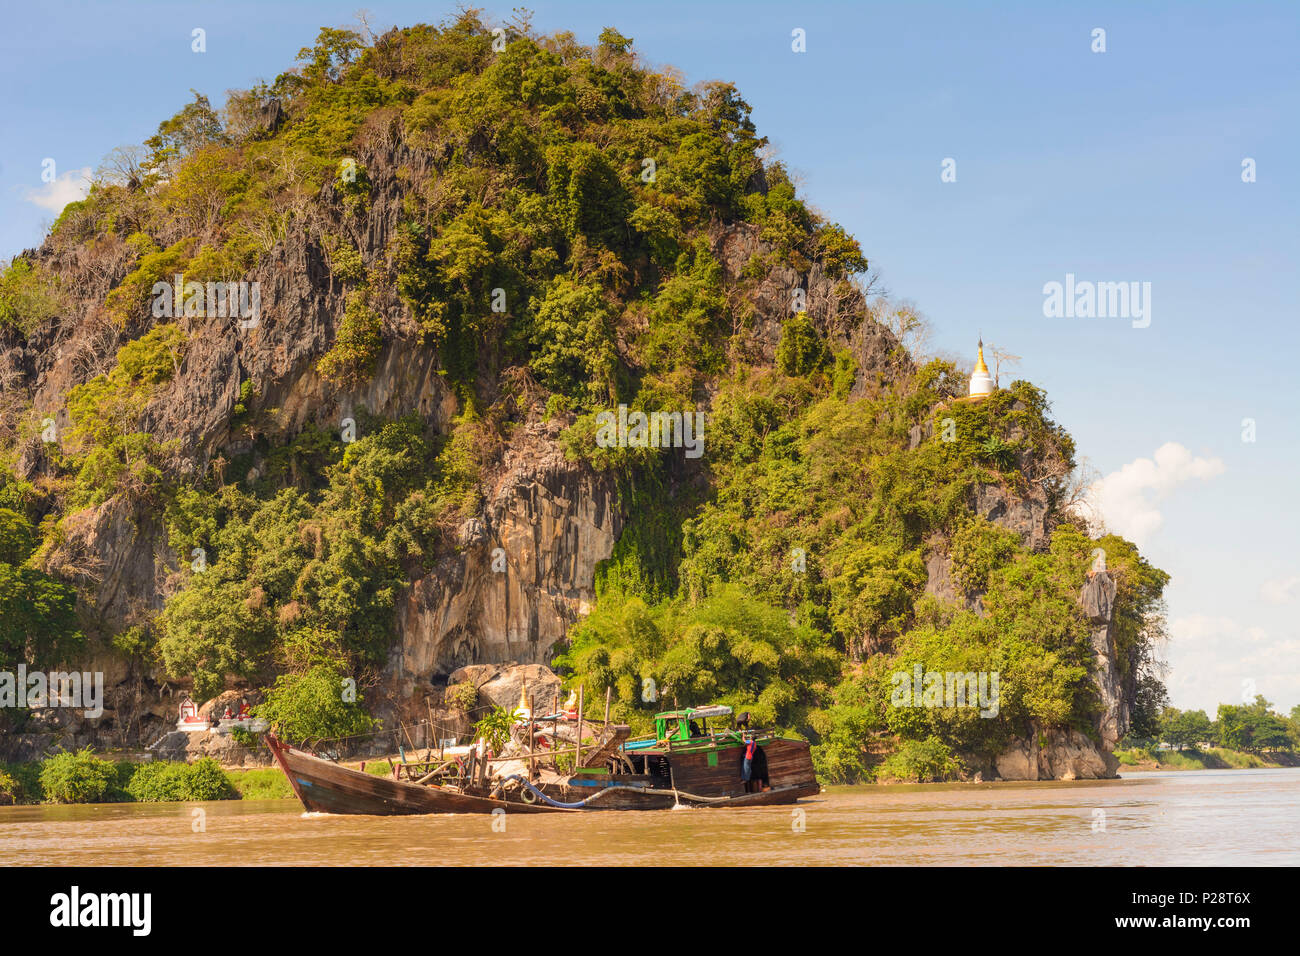 Hpa-An, hill of bat cave, Thanlwin (Salween) River. River dredge boat operating on Thanlwin (Salween) River. These are often used for gold sluicing or gravel mining., Kayin (Karen) State, Myanmar (Burma) - Stock Image